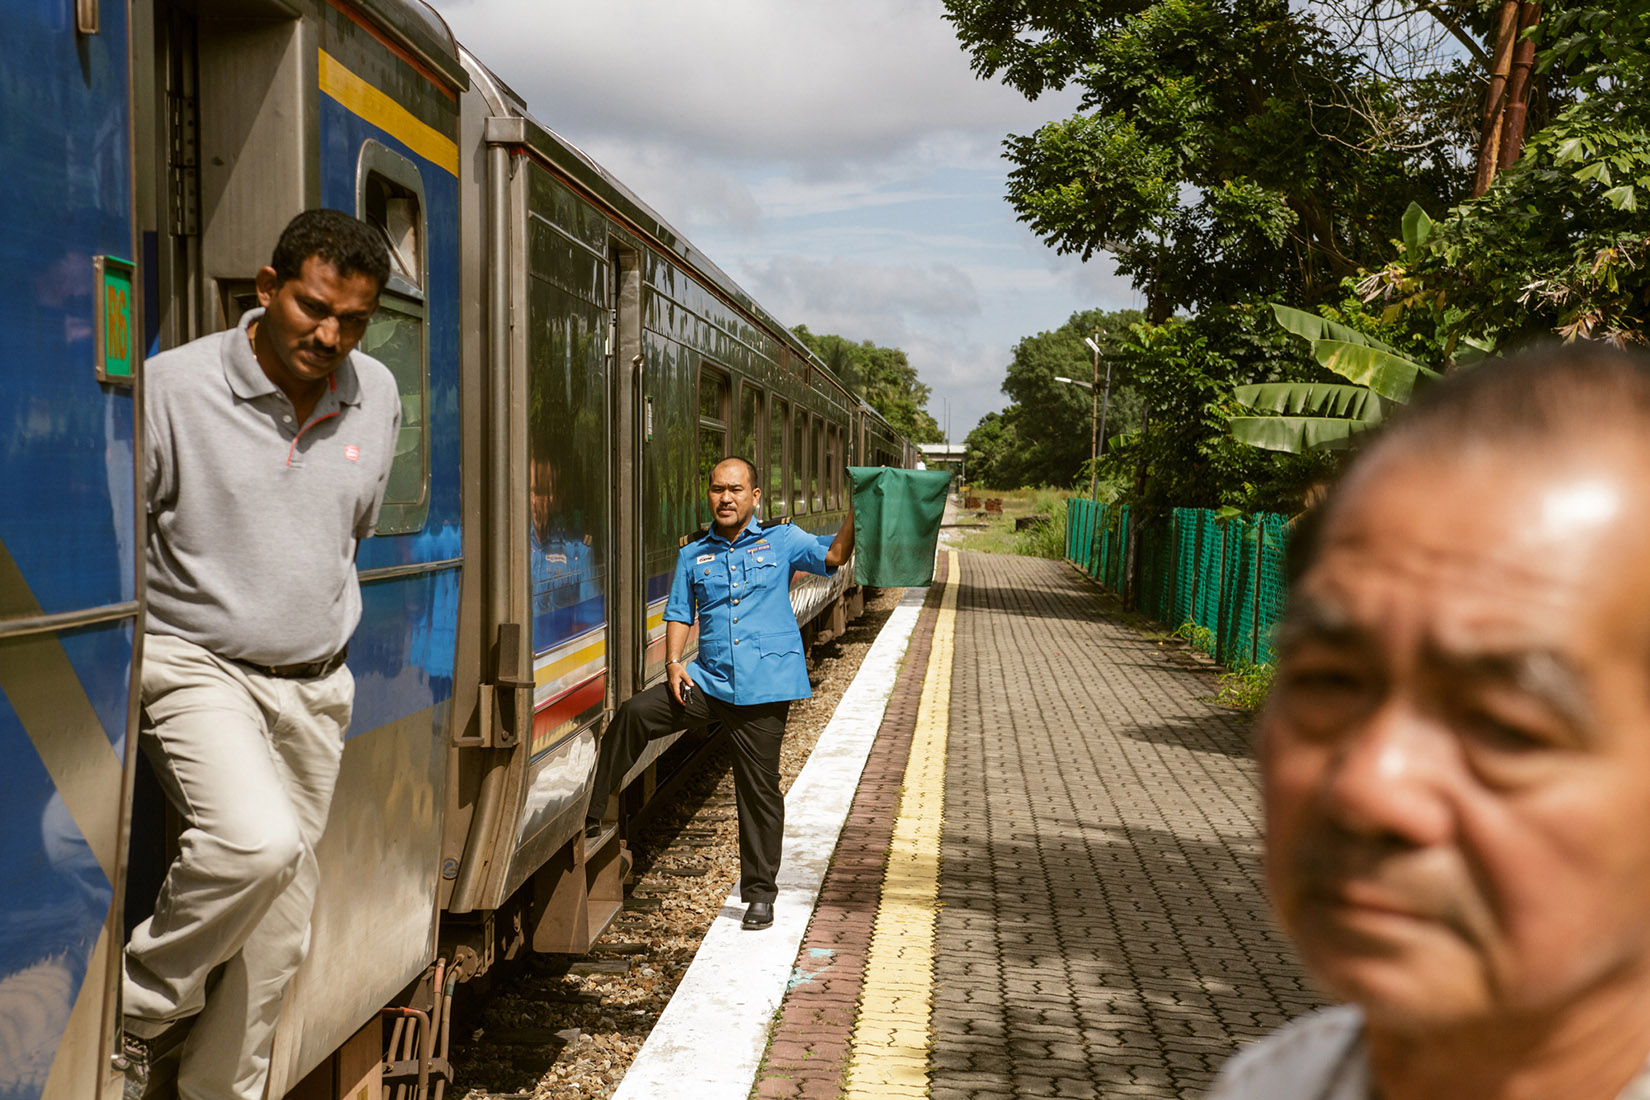 Train-KL---Kluang-7_1.jpg